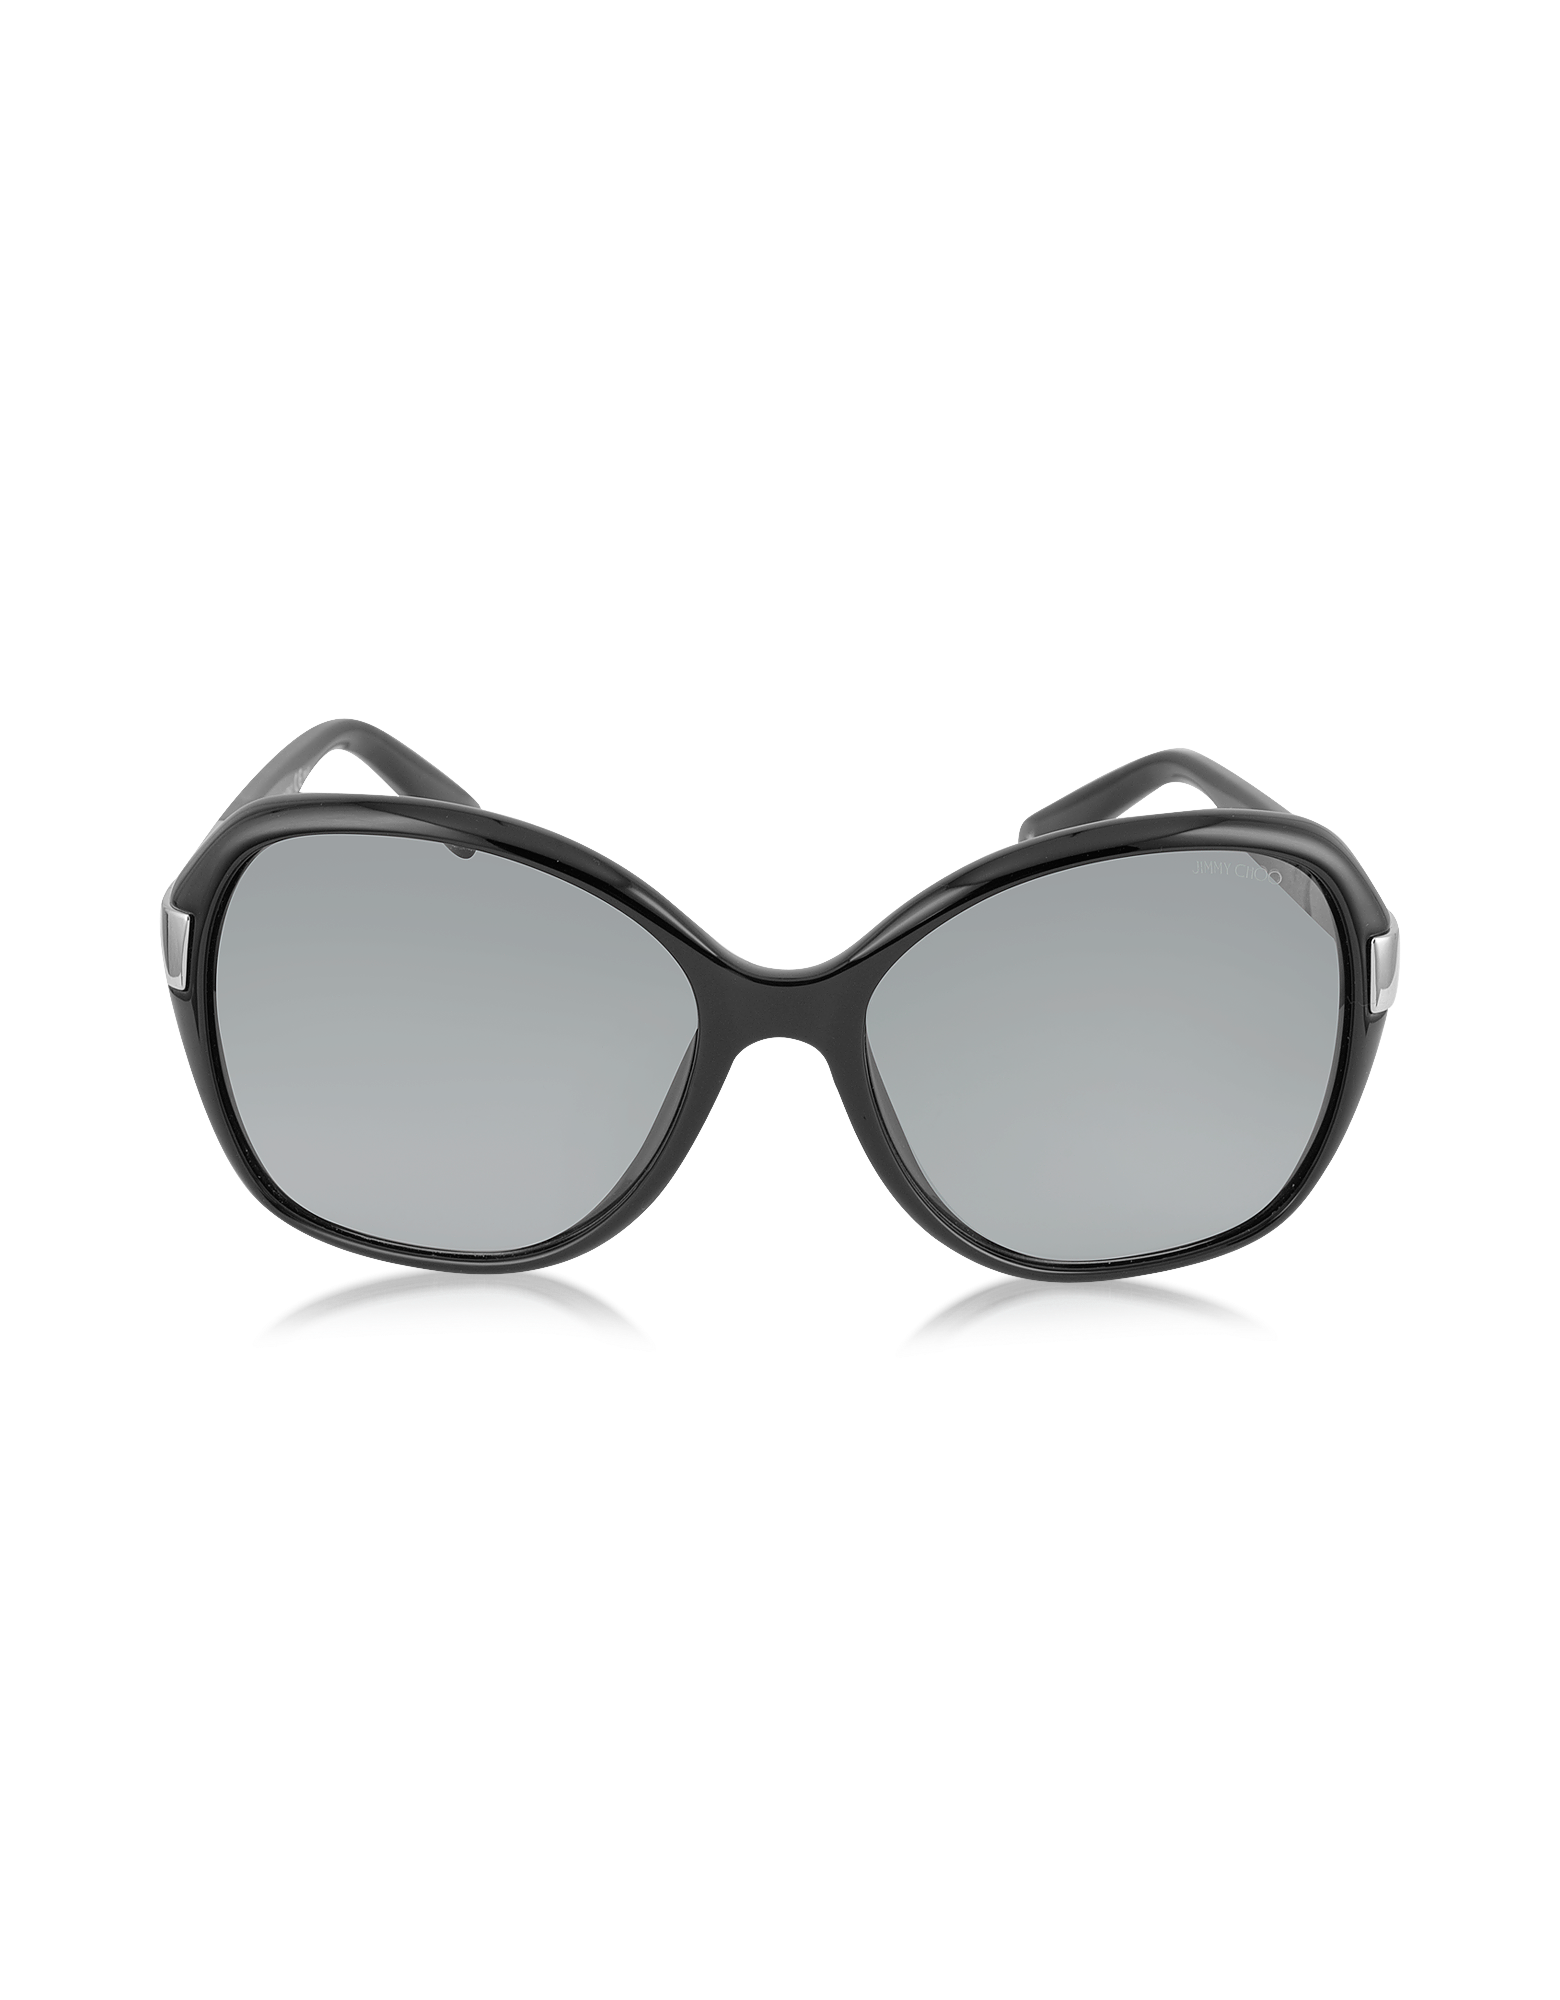 Image of ALANA/S Round Framed Sunglasses w/Crystal Inserts